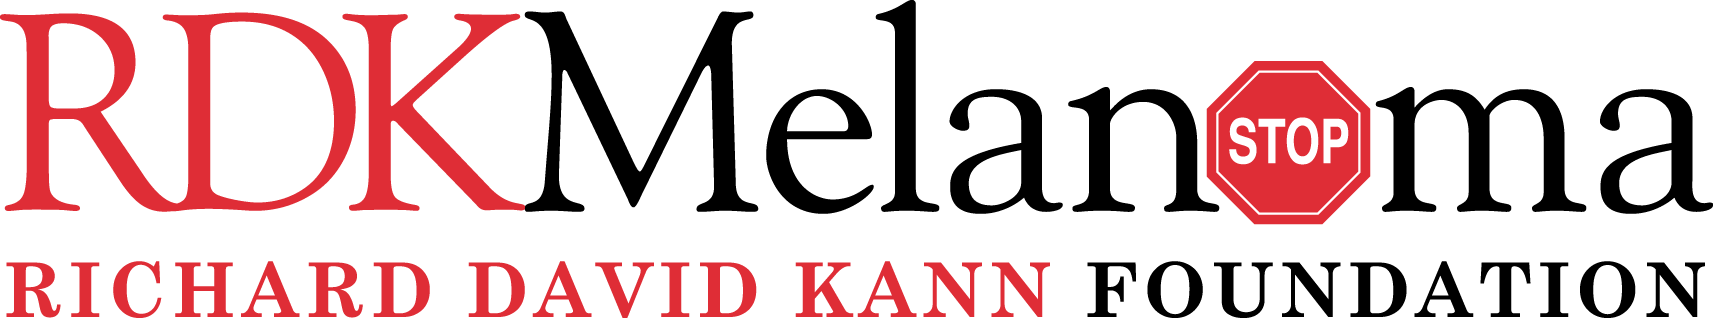 Richard David Kann (RDK) Melanoma Foundation